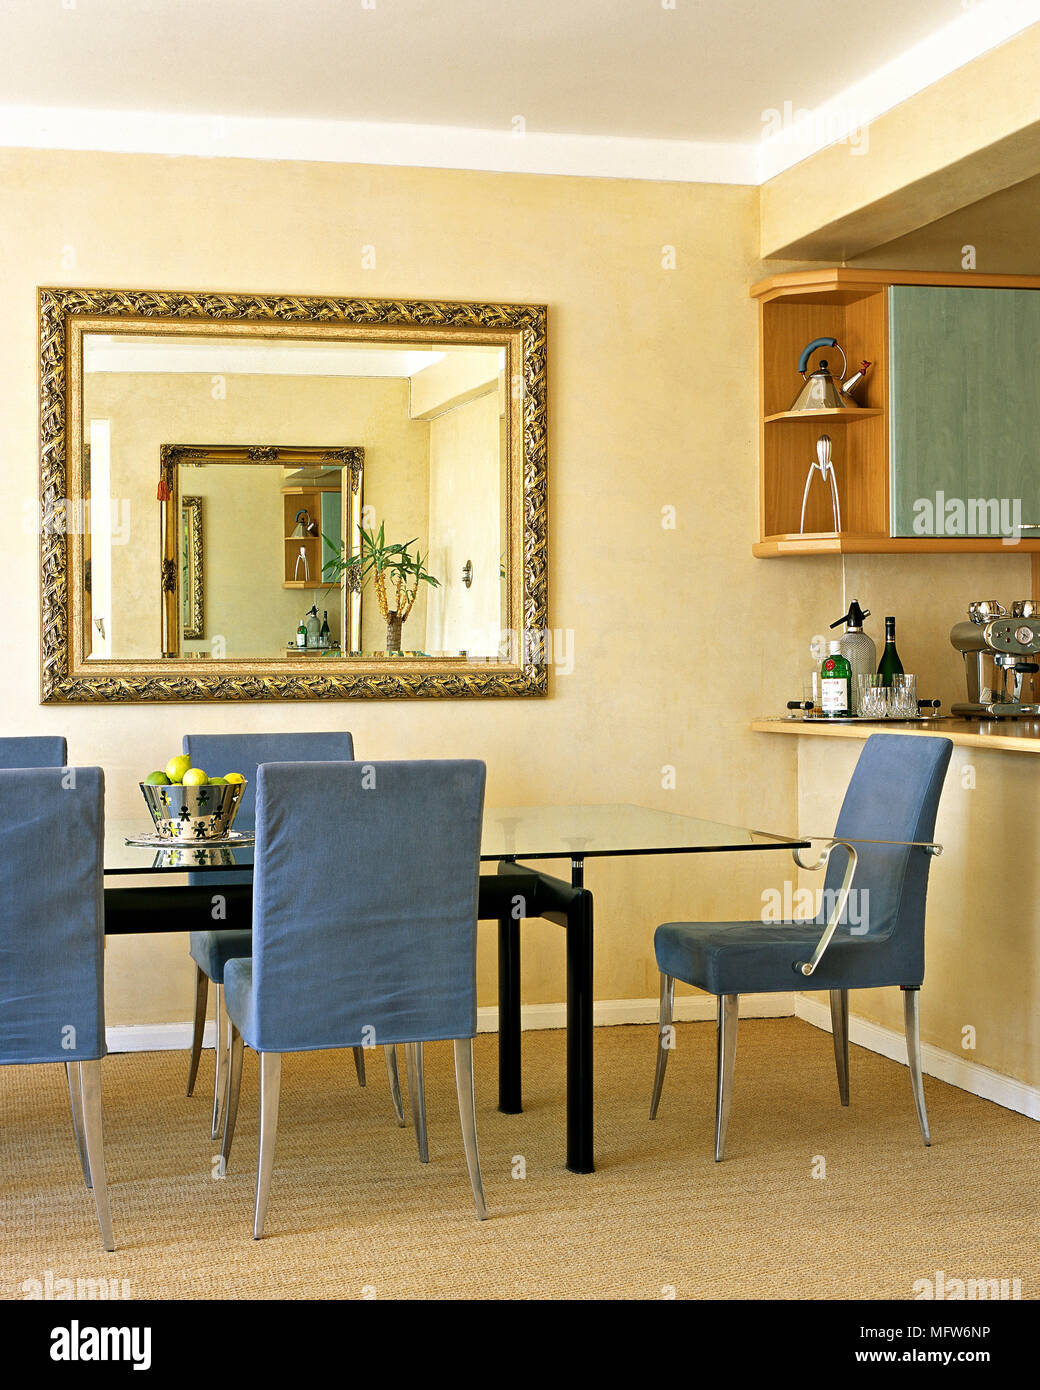 A Modern Open Plan Kitchen With Dining Area Glass Table Blue Covered Chairs Gilt Mirror Stock Photo Alamy